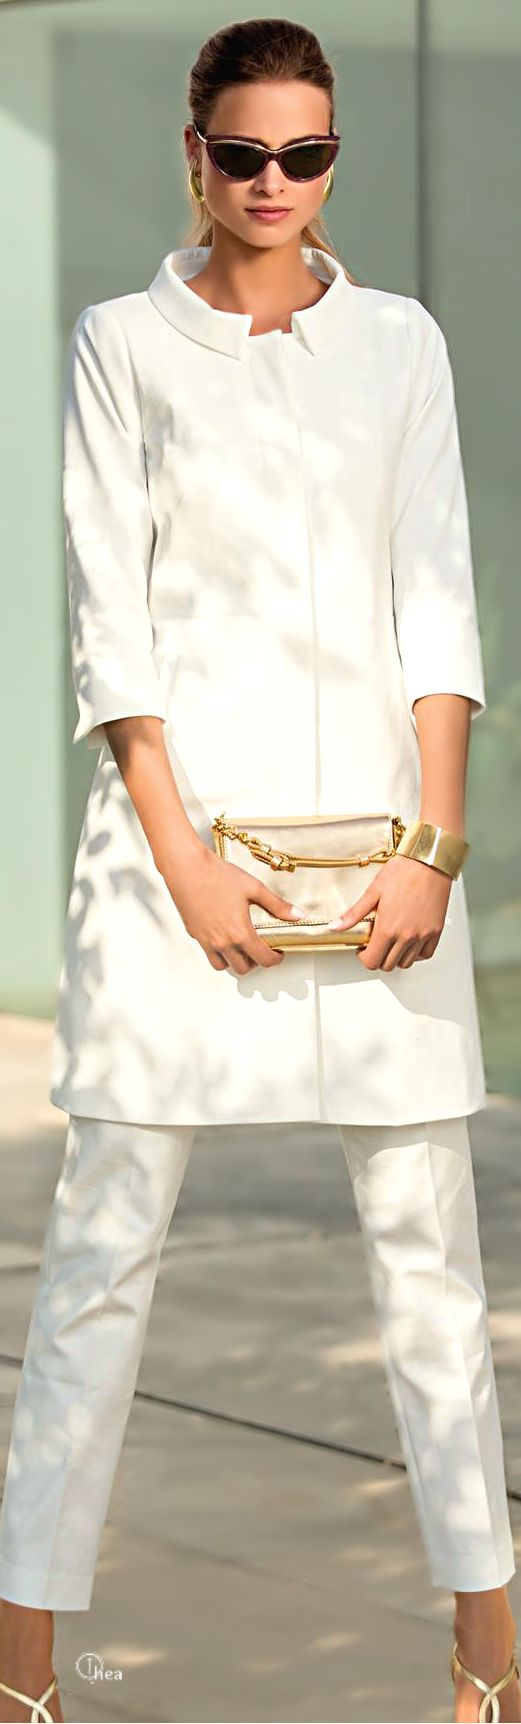 all white summer style fashion Pretty woman in white with dark